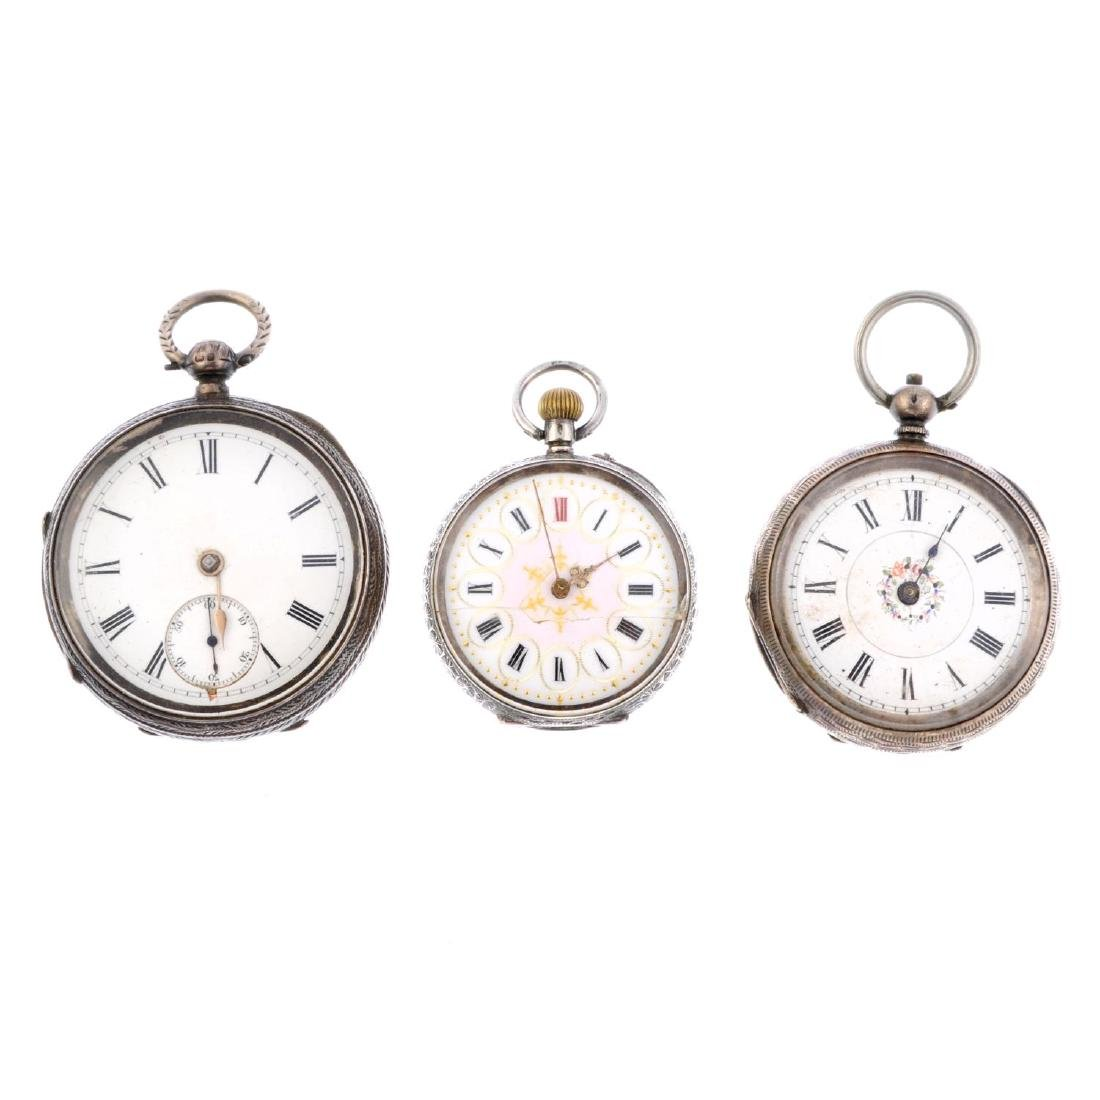 A group of ten assorted pocket watches, to include